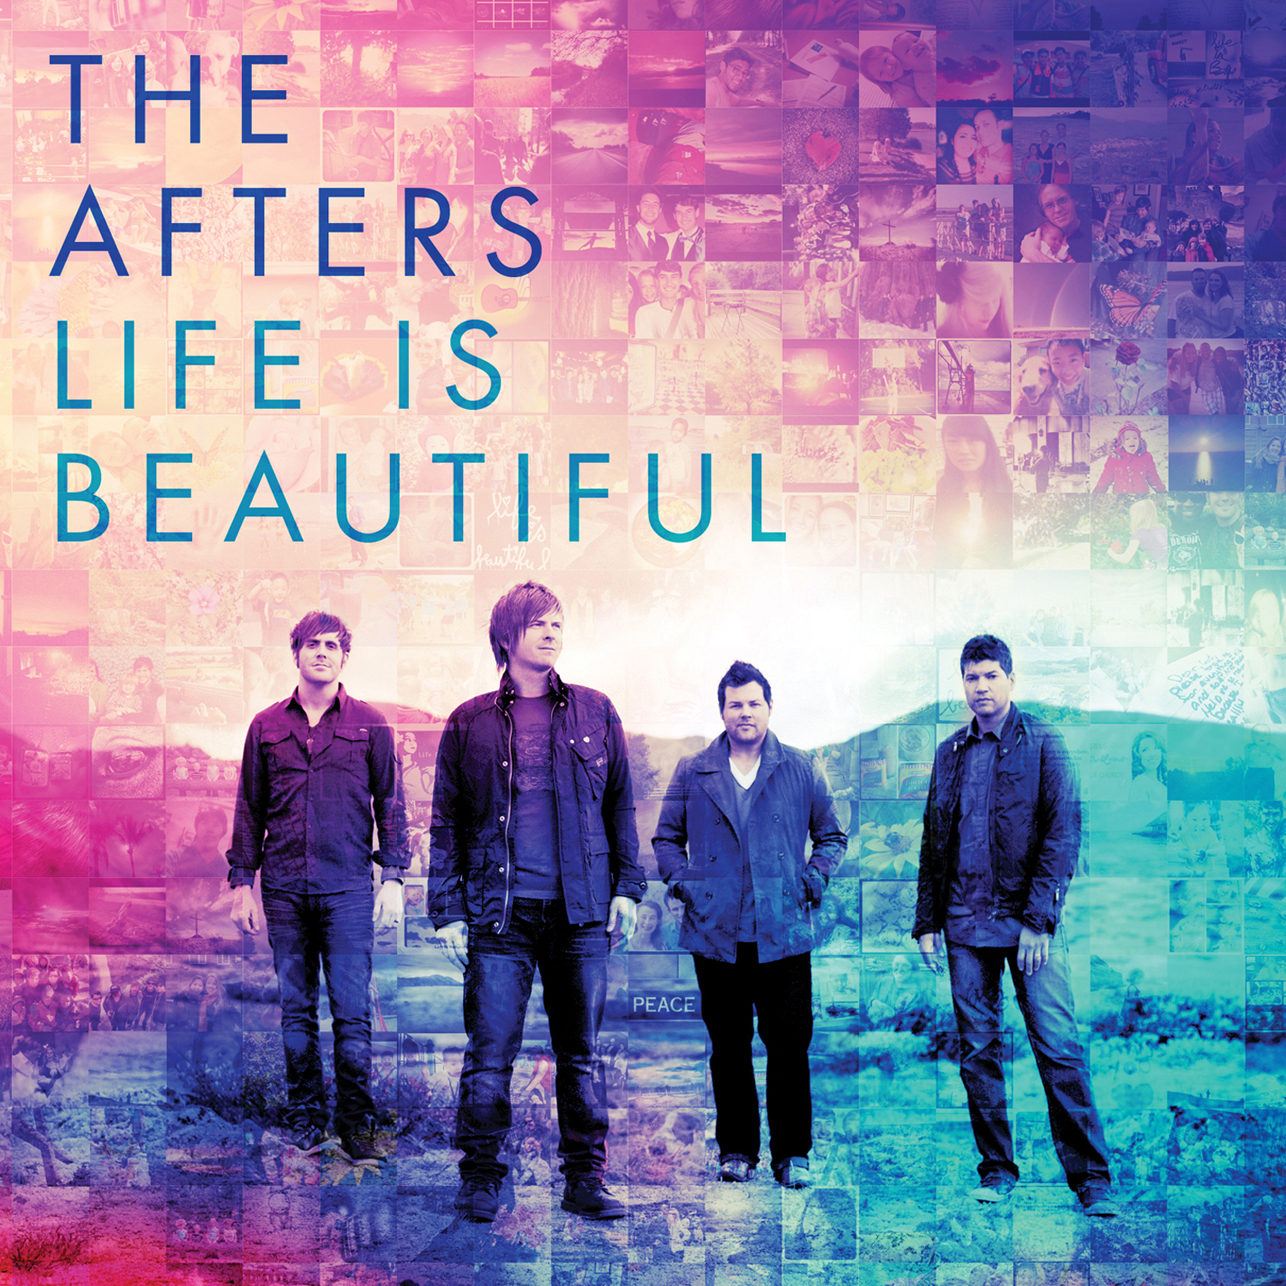 lifeisbeautiful_the-afters-cover